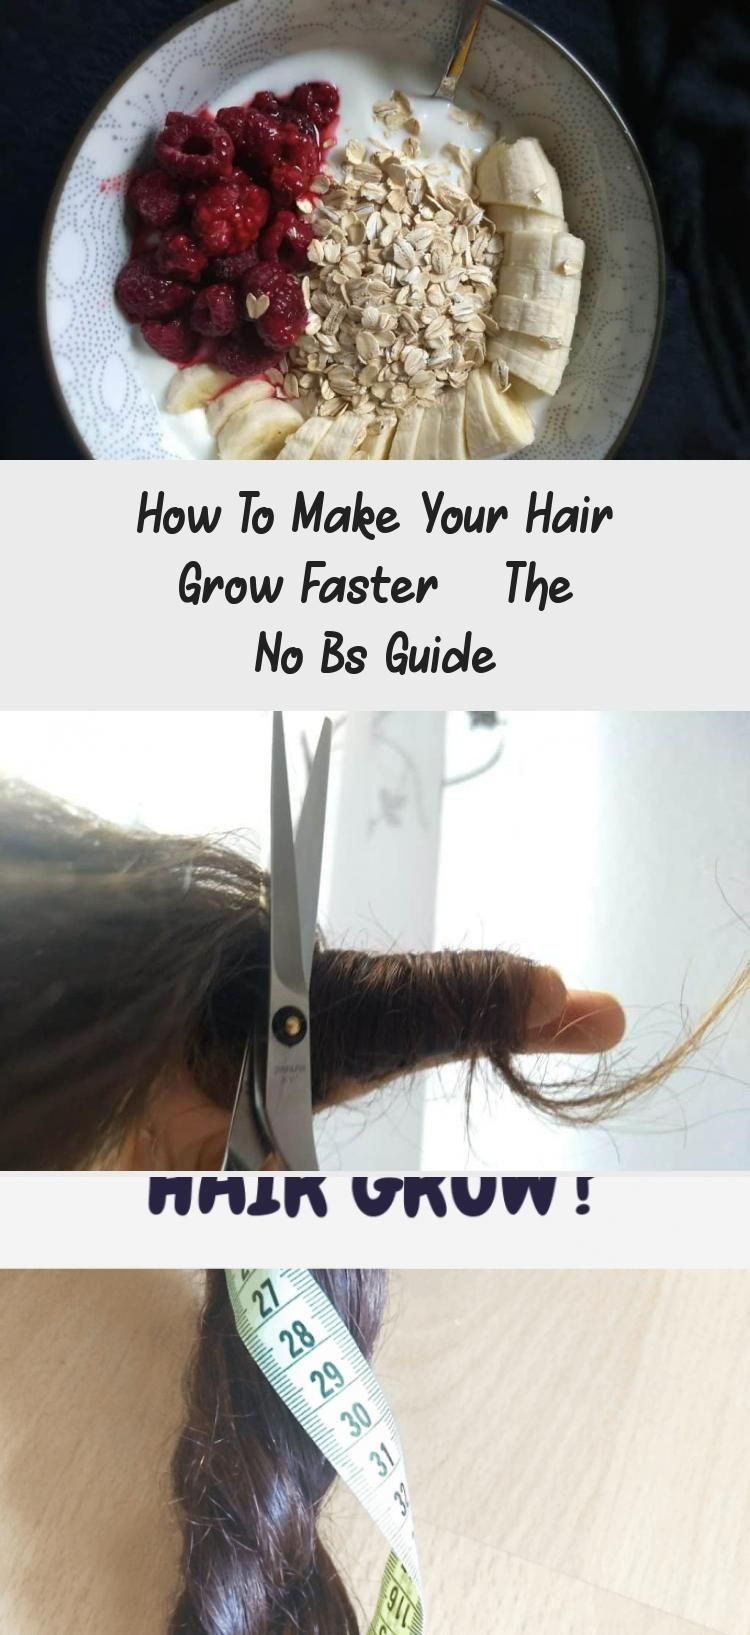 Want some real tips for faster hair growth? This is your guide! #Fenugreekhairgrowth #Rapidhairgrowth #hairgrowthVitamins #hairgrowthPictures #AppleCiderVinegarhairgrowth #fasterhairgrowth